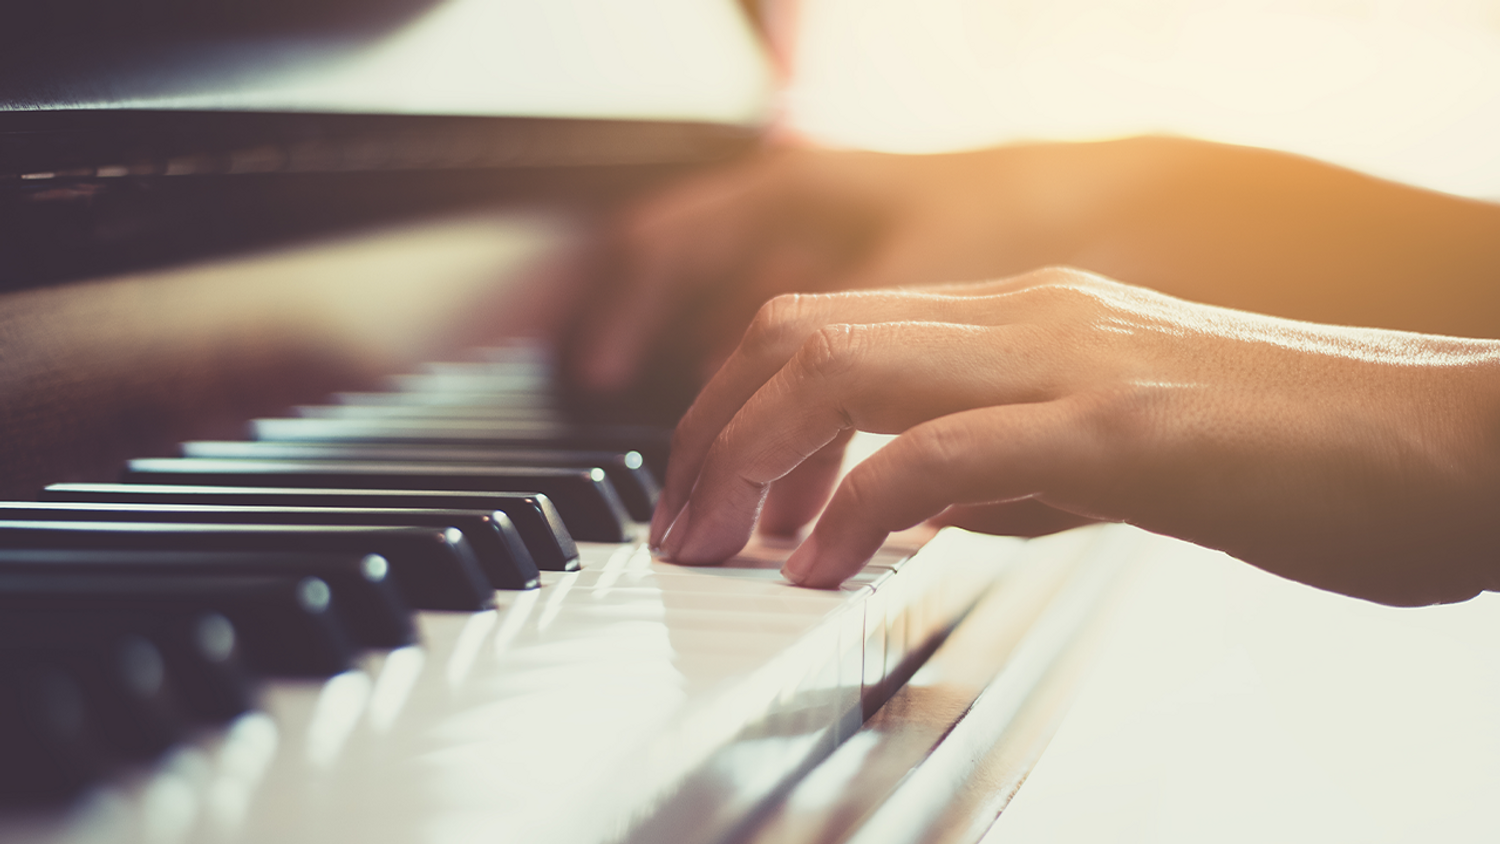 ​Piano Lessons: Read These Cool Piano Tips and Tricks!